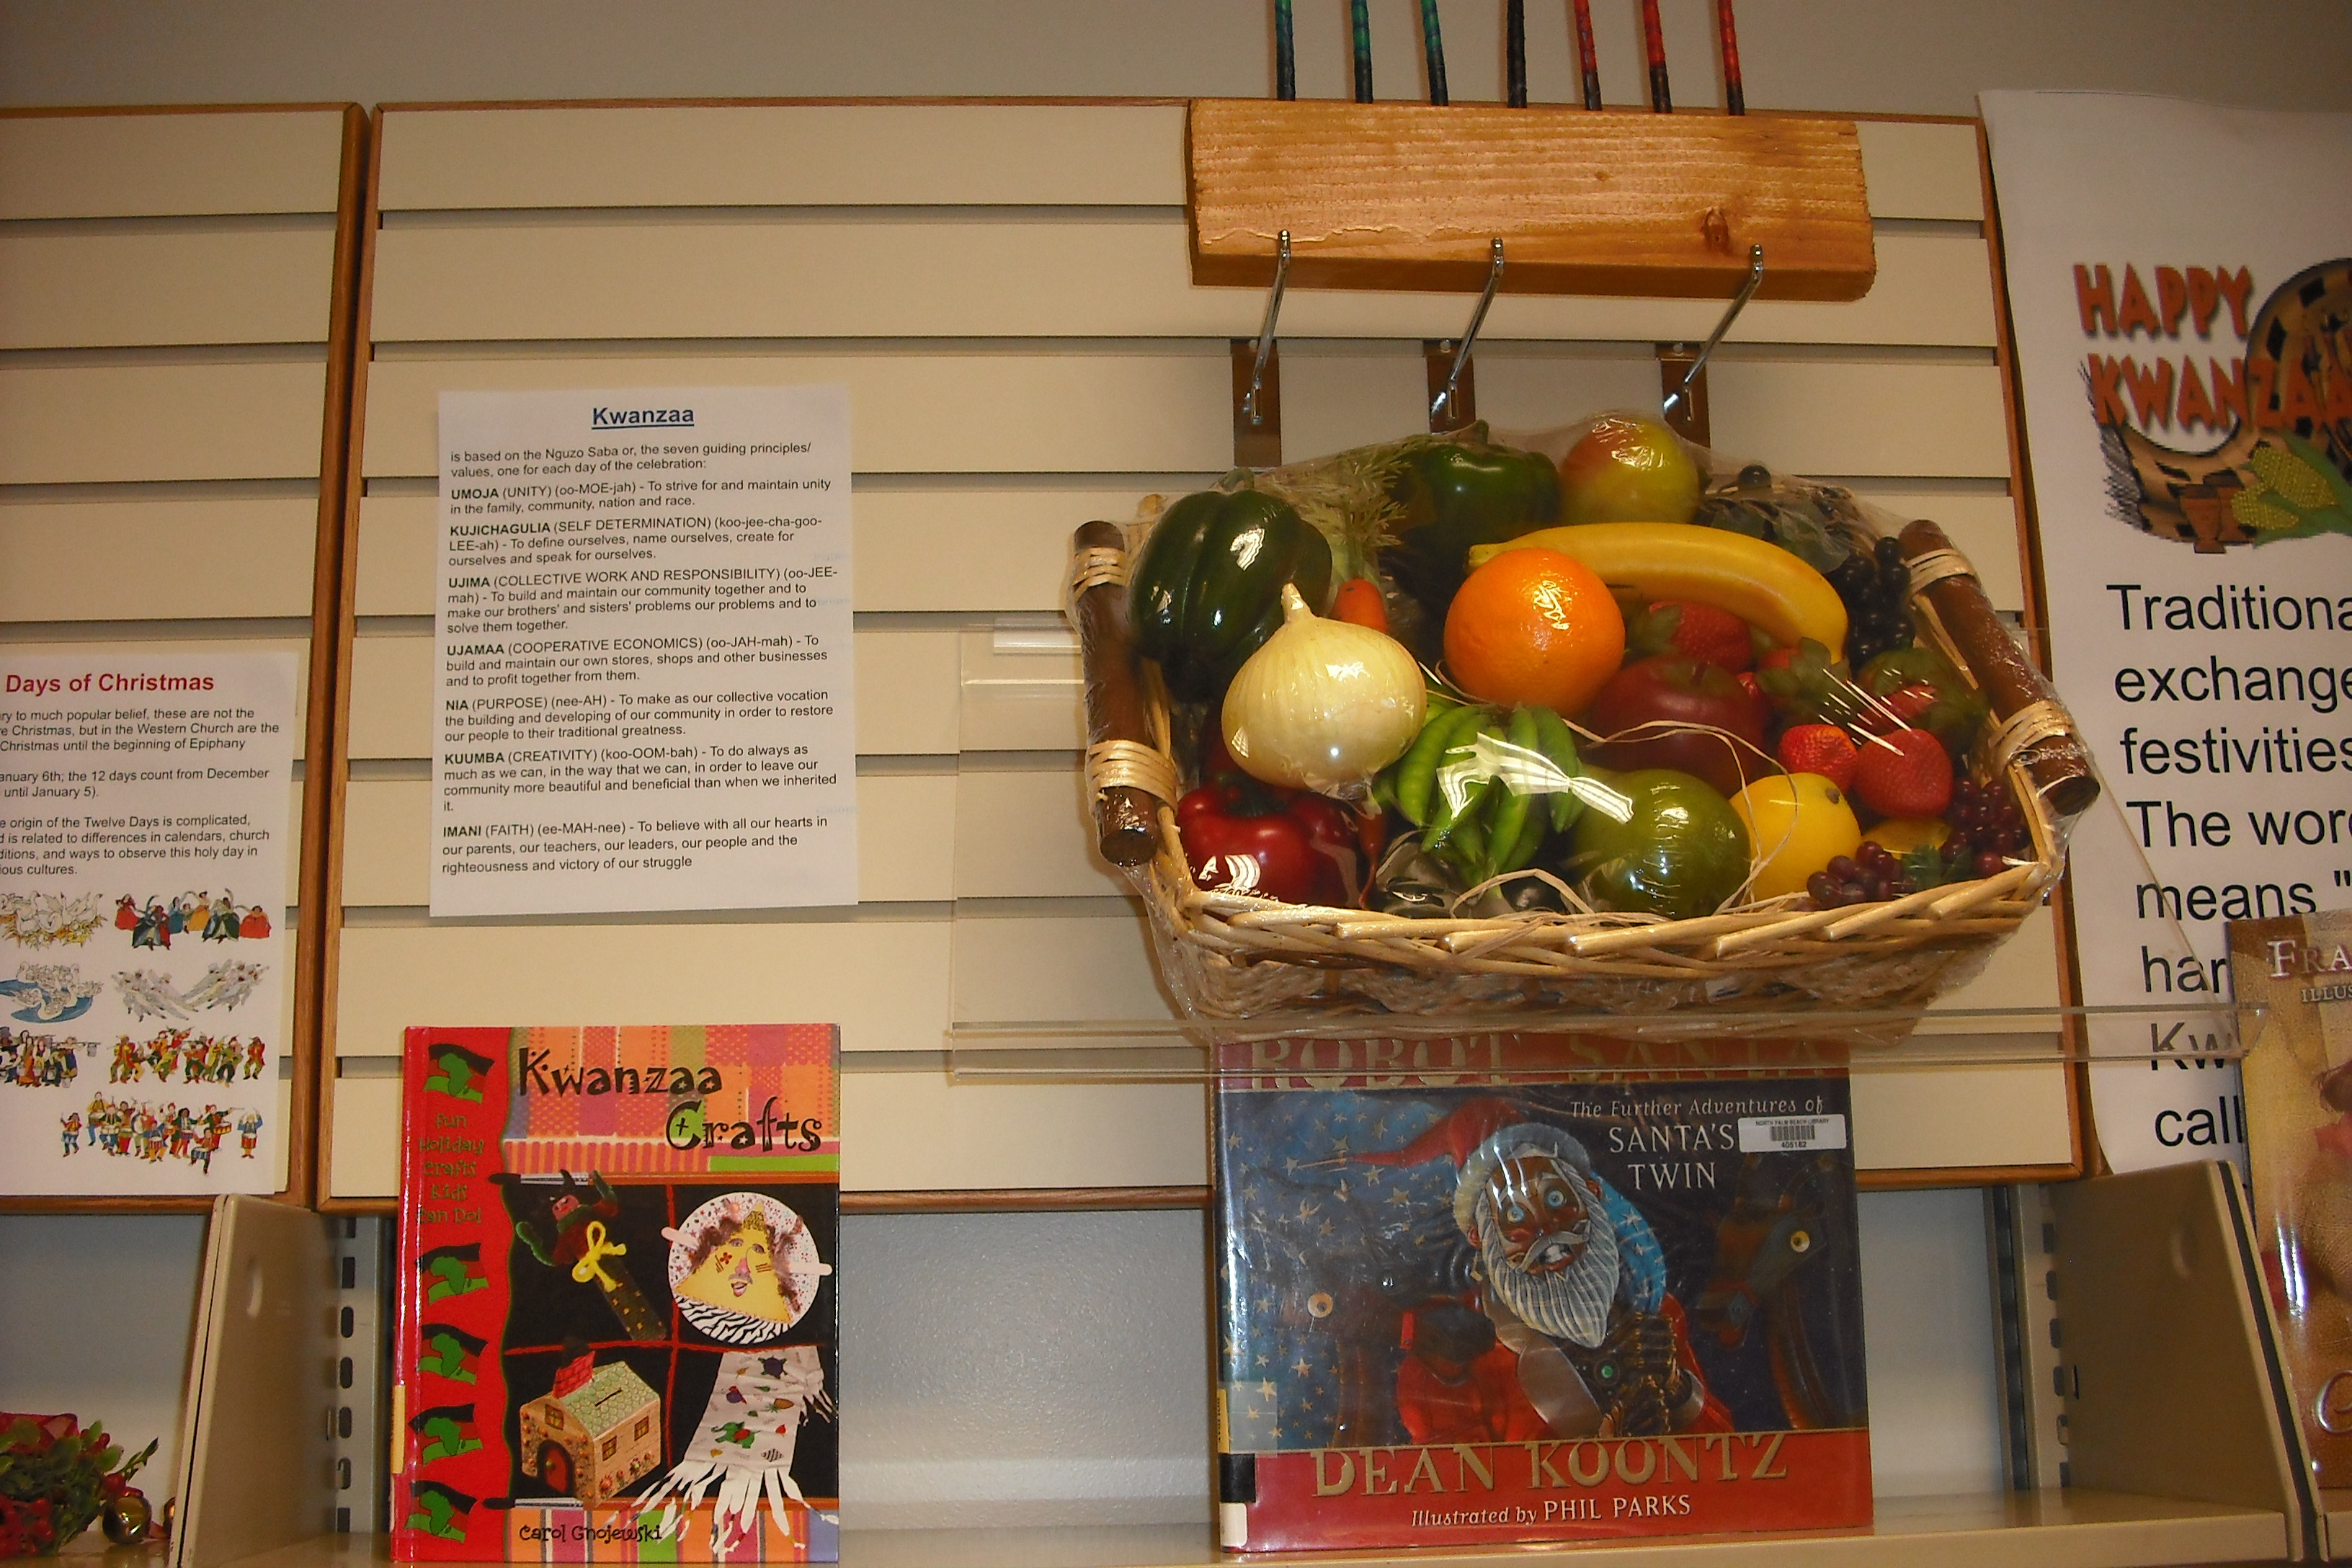 A fruit basket sits next to a paper with information about Kwanzaa